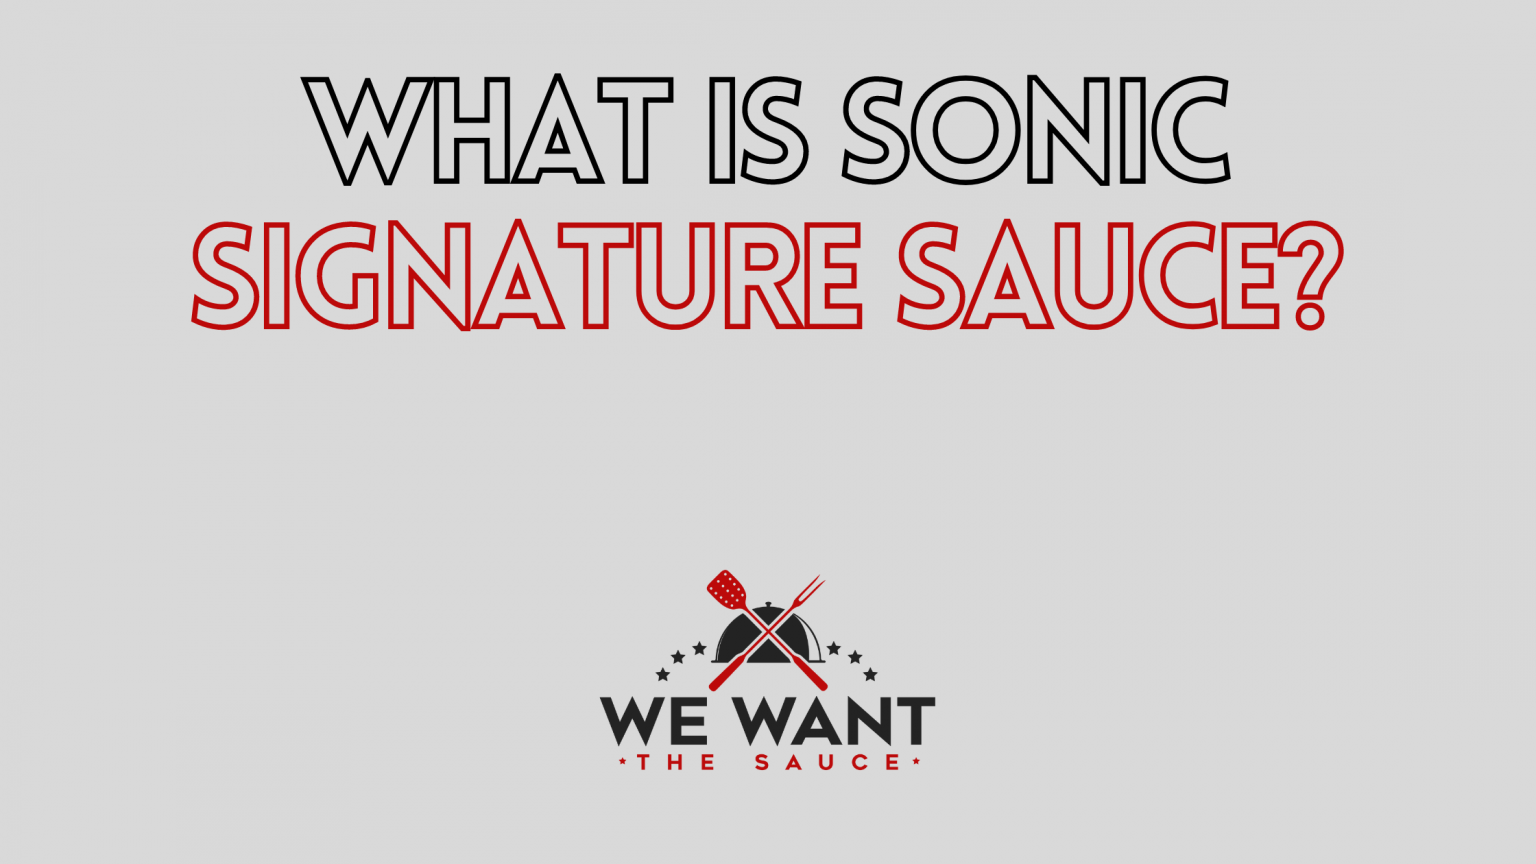 What Is Sonic Signature Sauce?